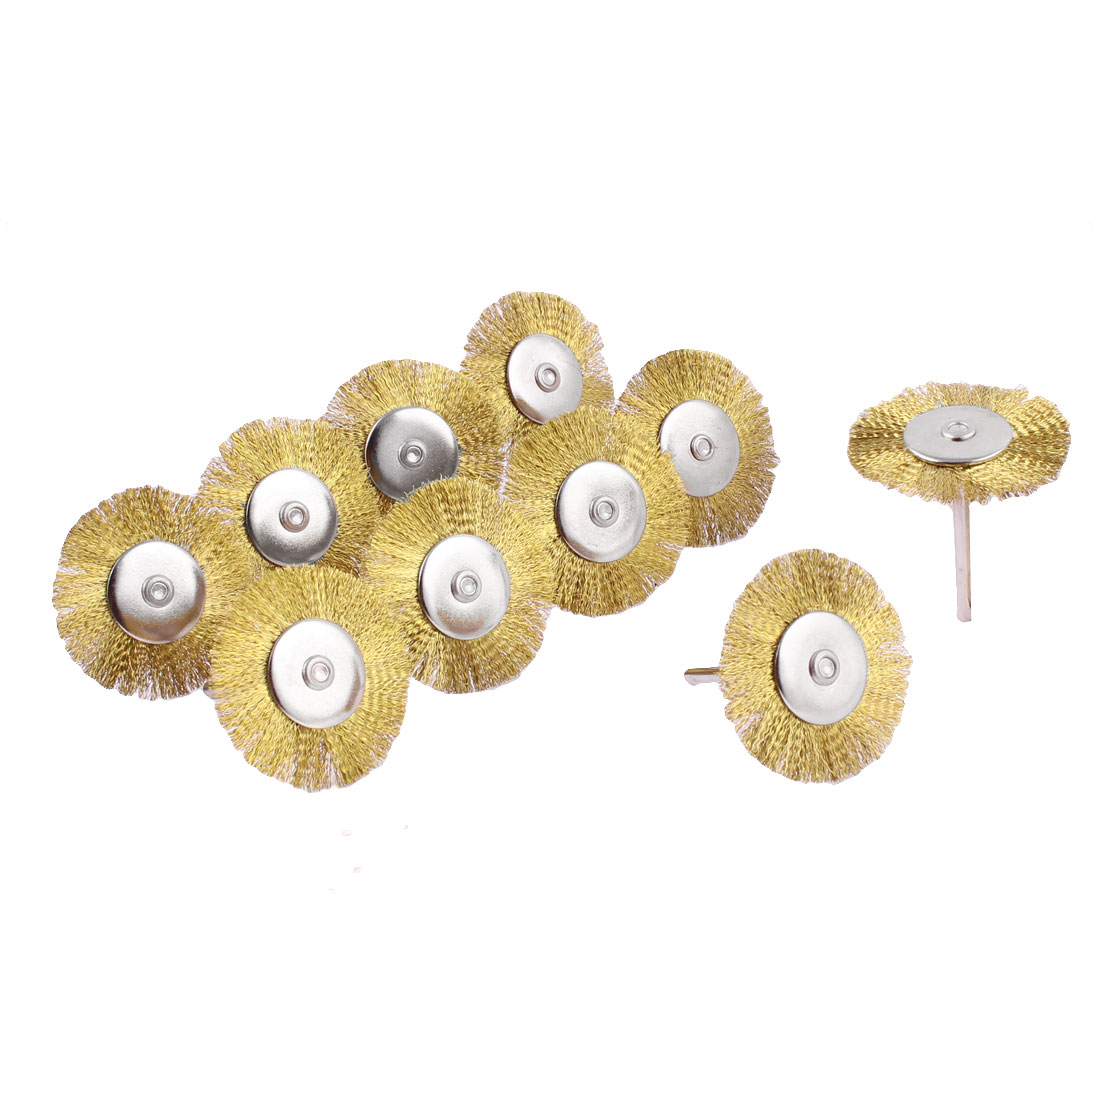 10pcs 3mm Shank 40mm Dia Crimped Brass Wire Wheel Polishing Brushes 40mm Long